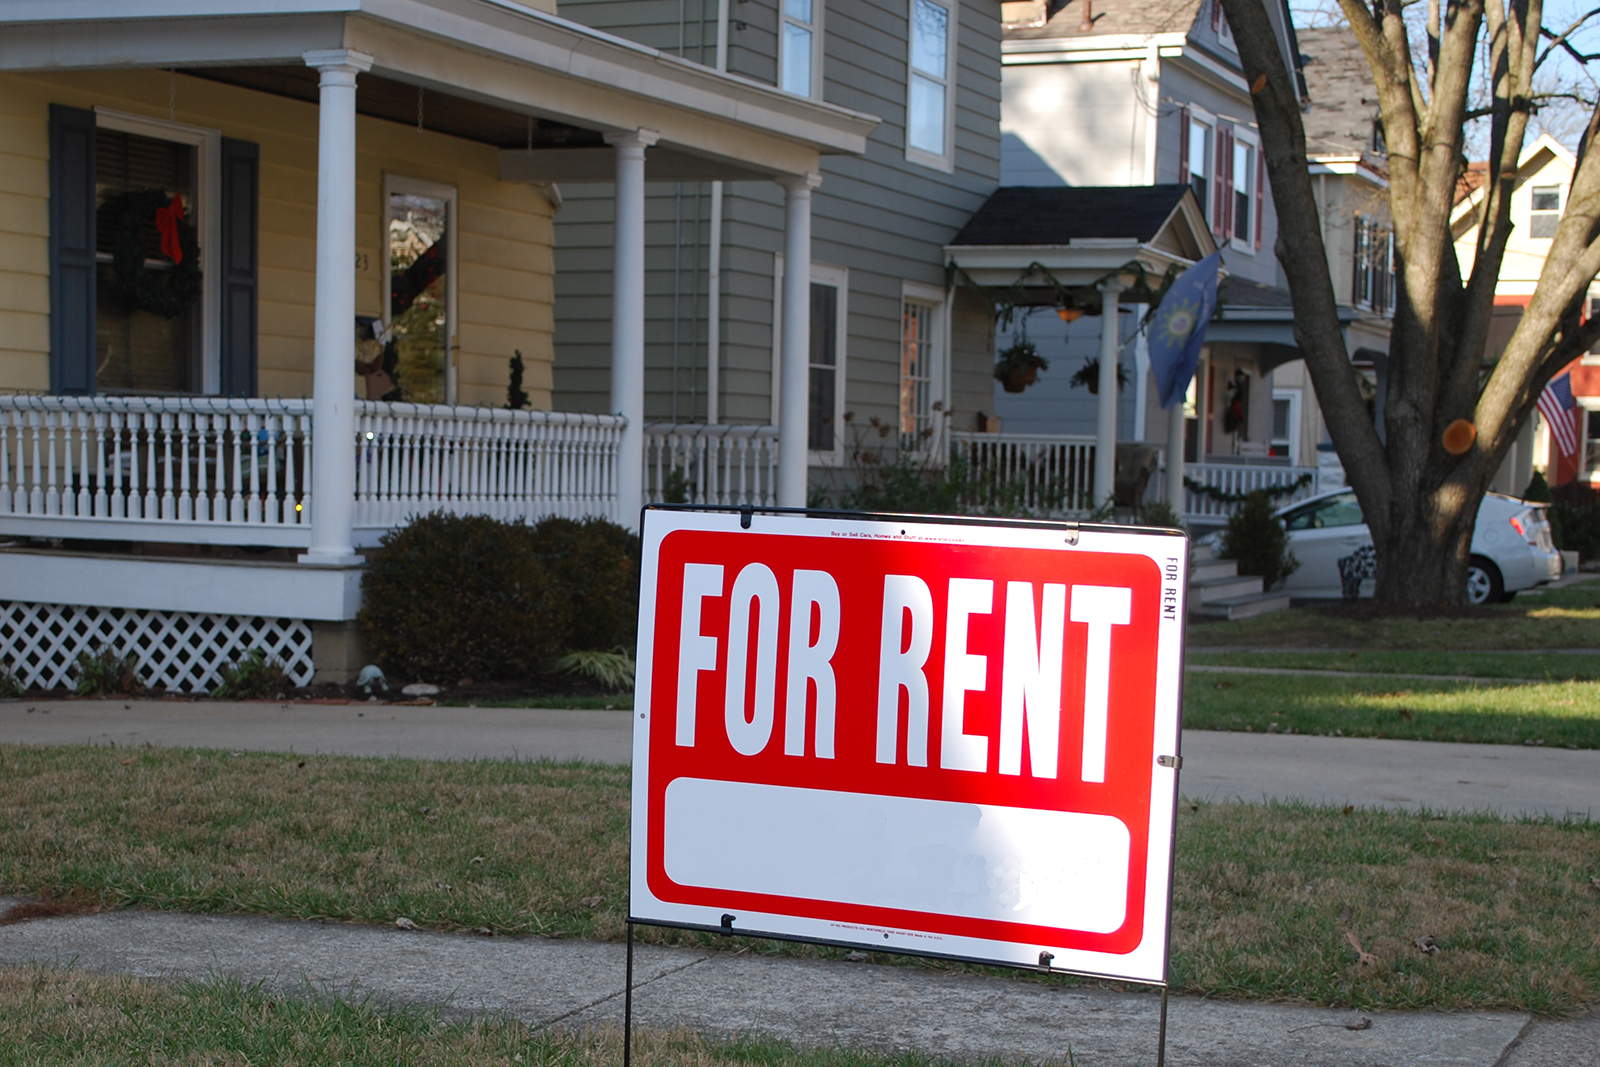 Rental Property Tax Deductions: What You Can Deduct, Such as